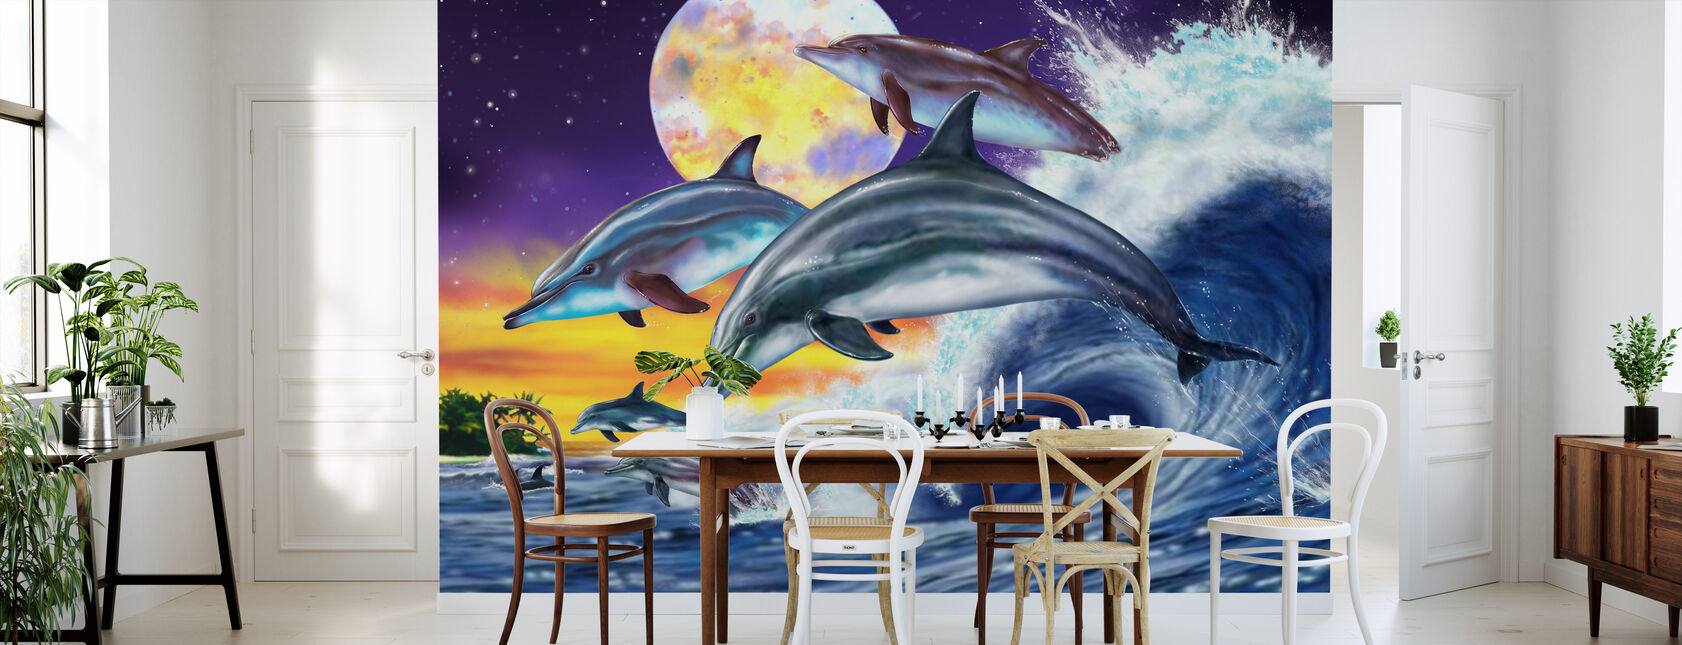 Dolphins - Wallpaper - Kitchen